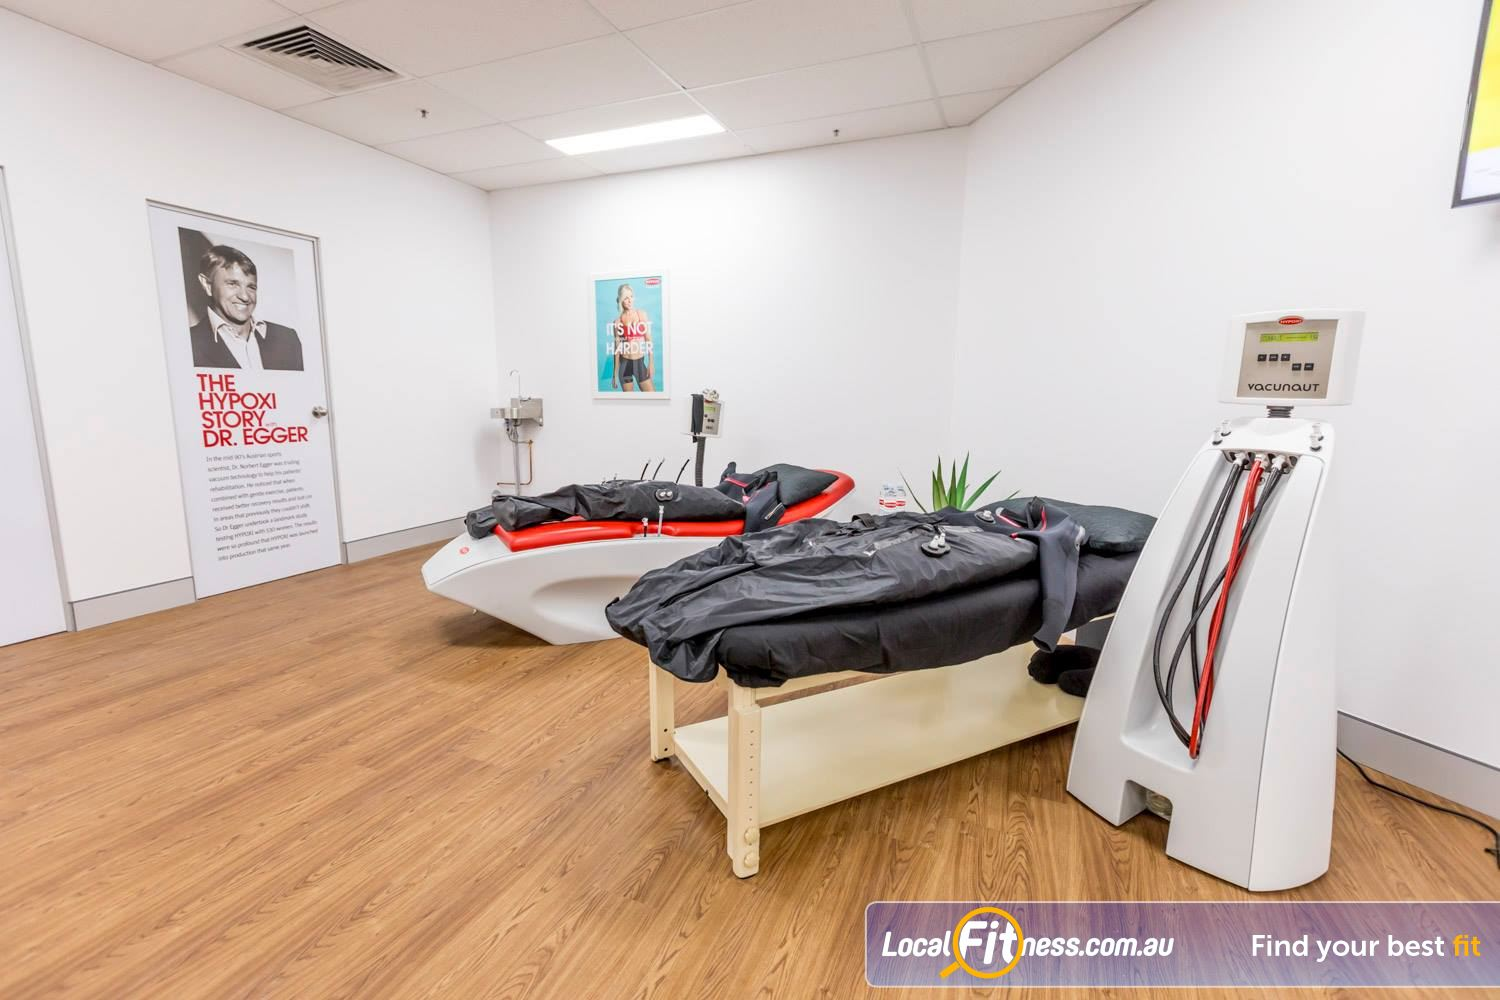 HYPOXI Weight Loss Westbourne Park HYPOXI Crossroads is great for men looking to lose those love handles.